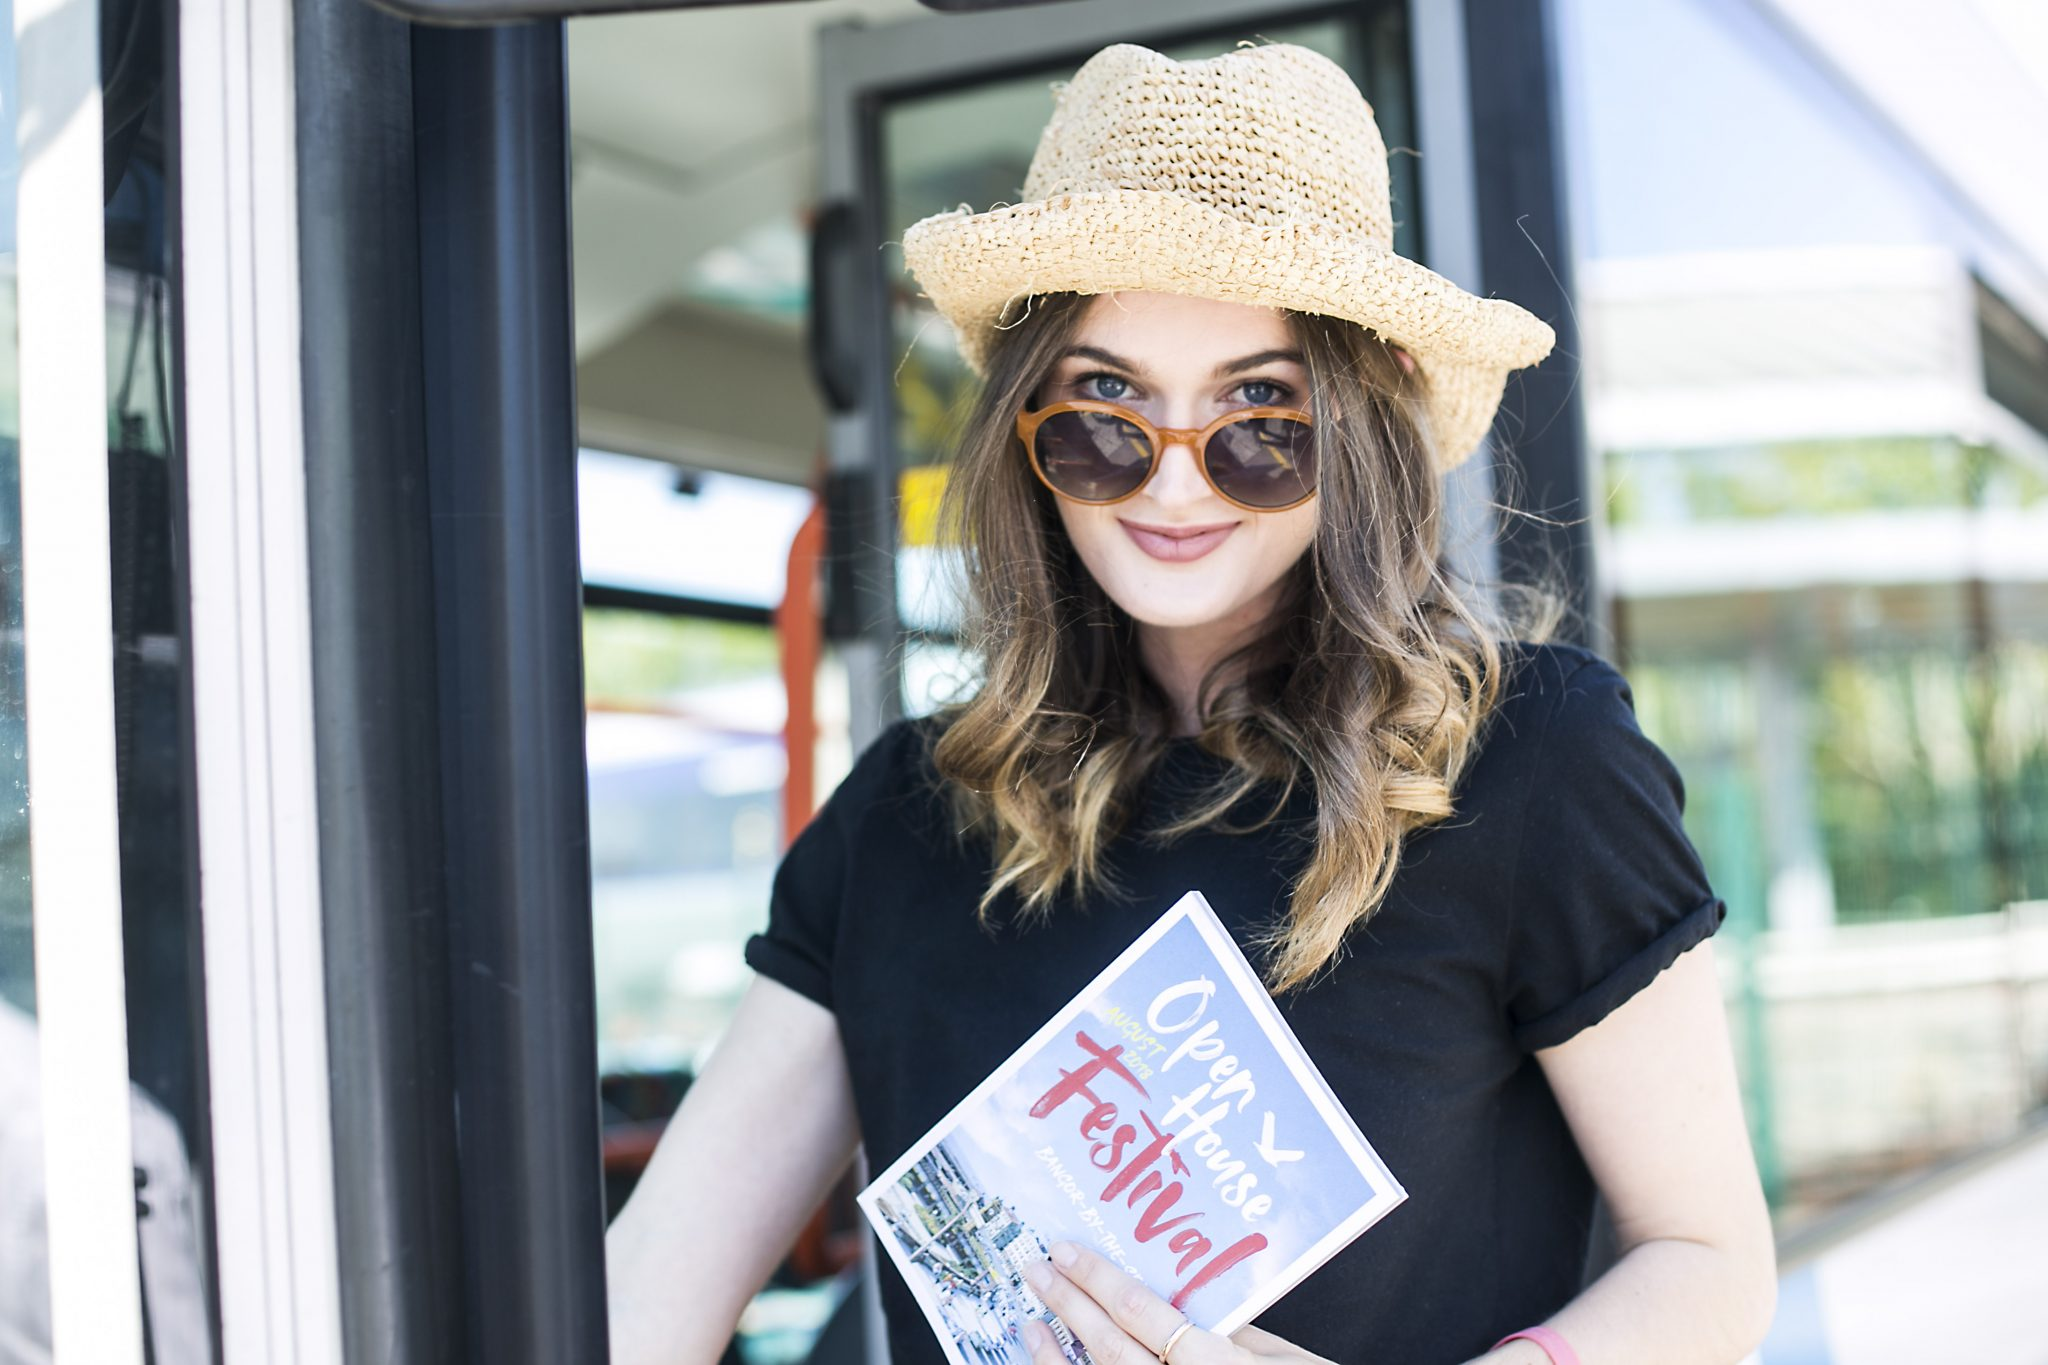 Open House Festival intern Candice O'Reilly is ready for a month of gigs, events and festivities in Bangor.